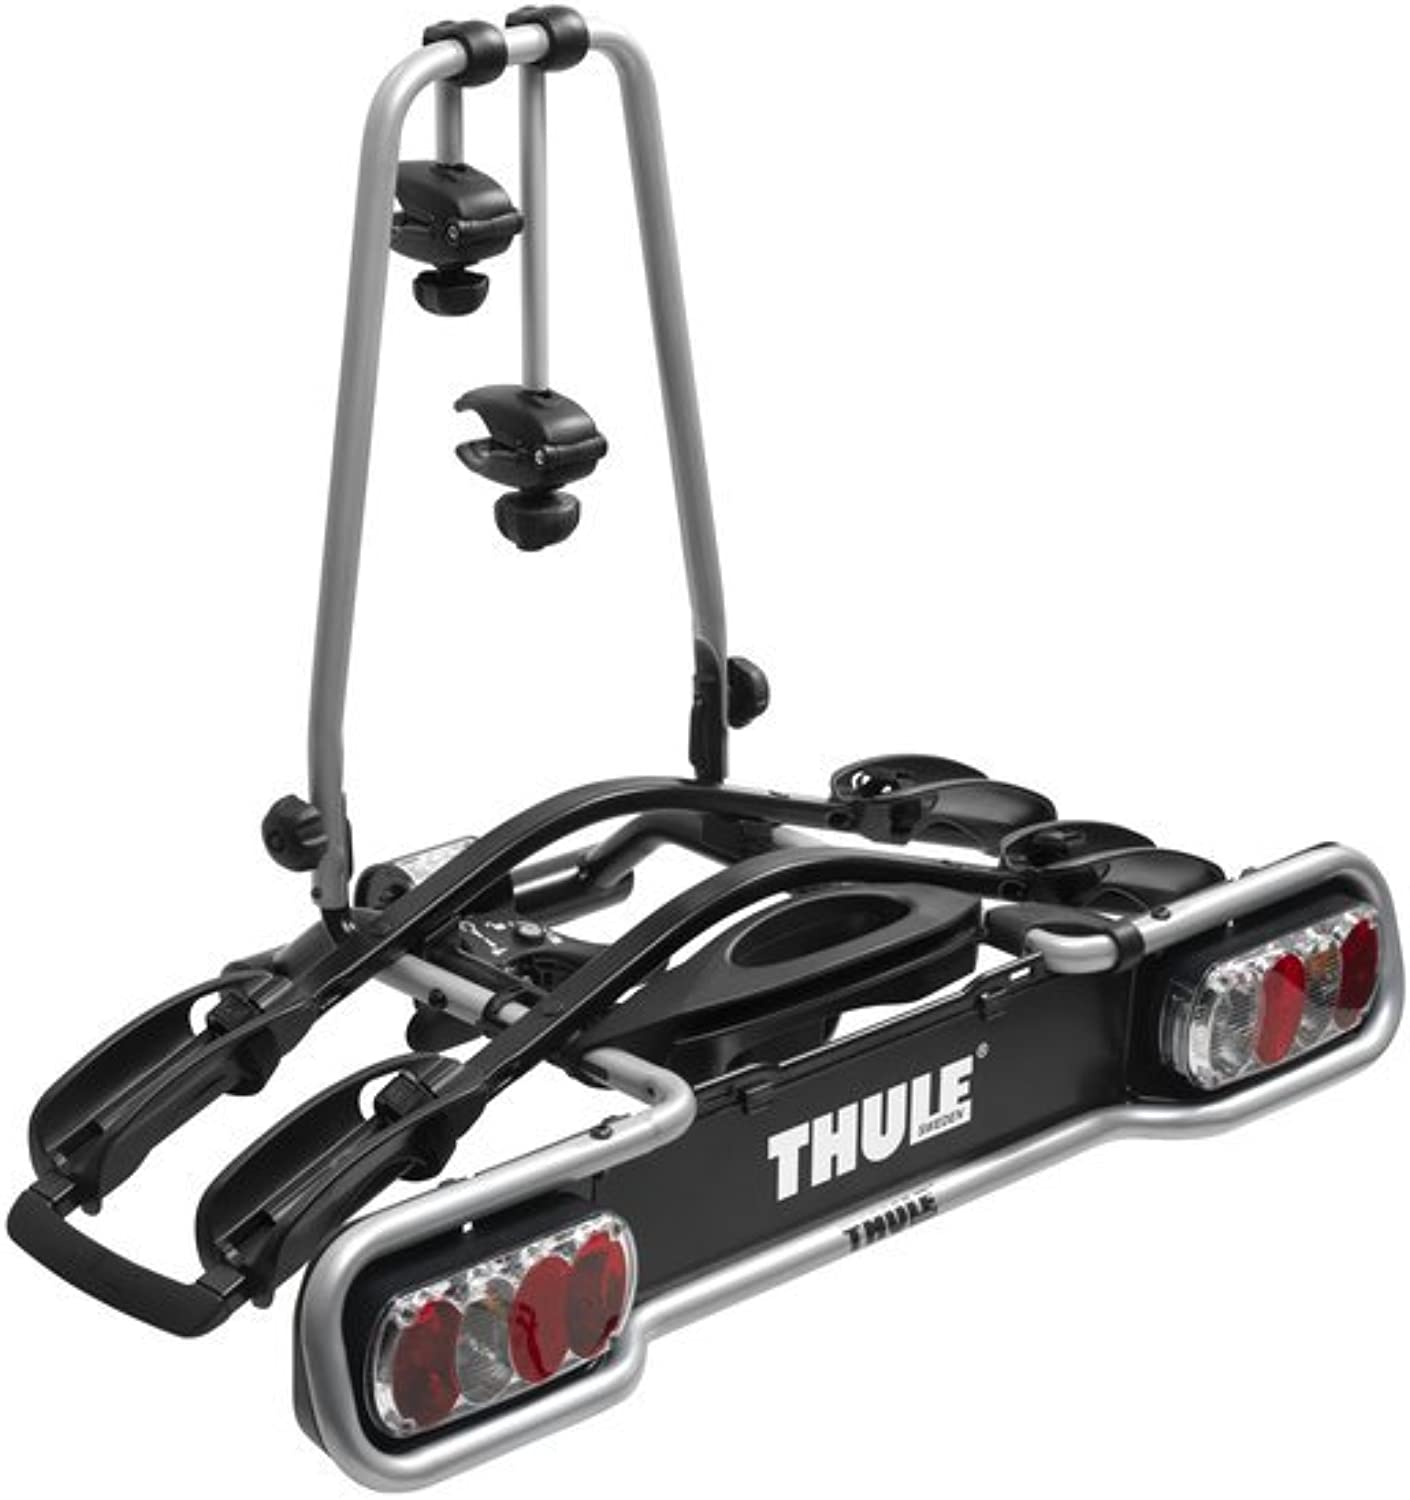 Thule 941 Euroride 2 Bike Carrier